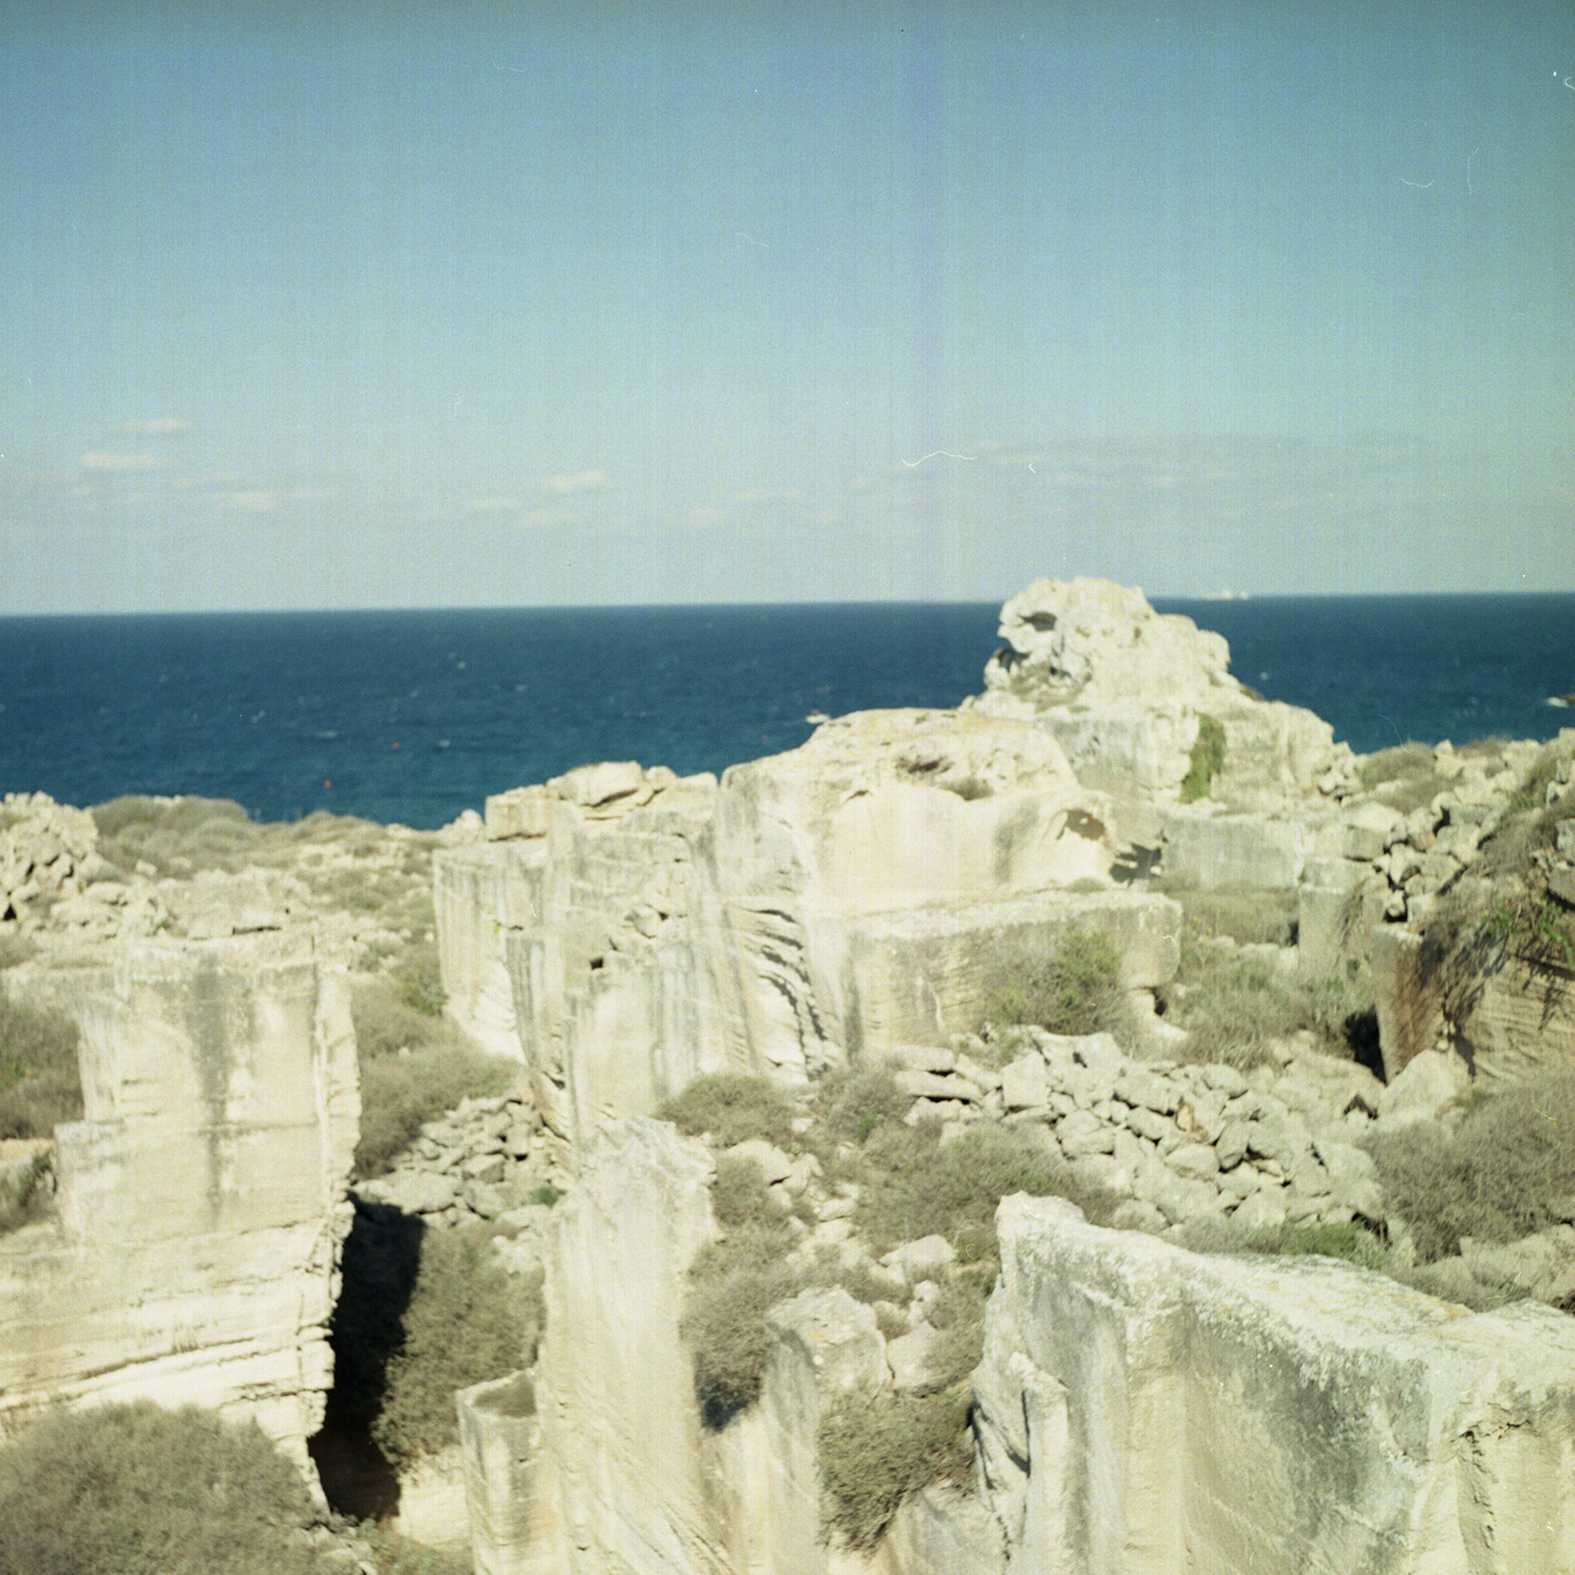 Camera: Yashica Mat-124G  Film: Lomography CN 400  Location: Favignana, Egadi Islands, Italy